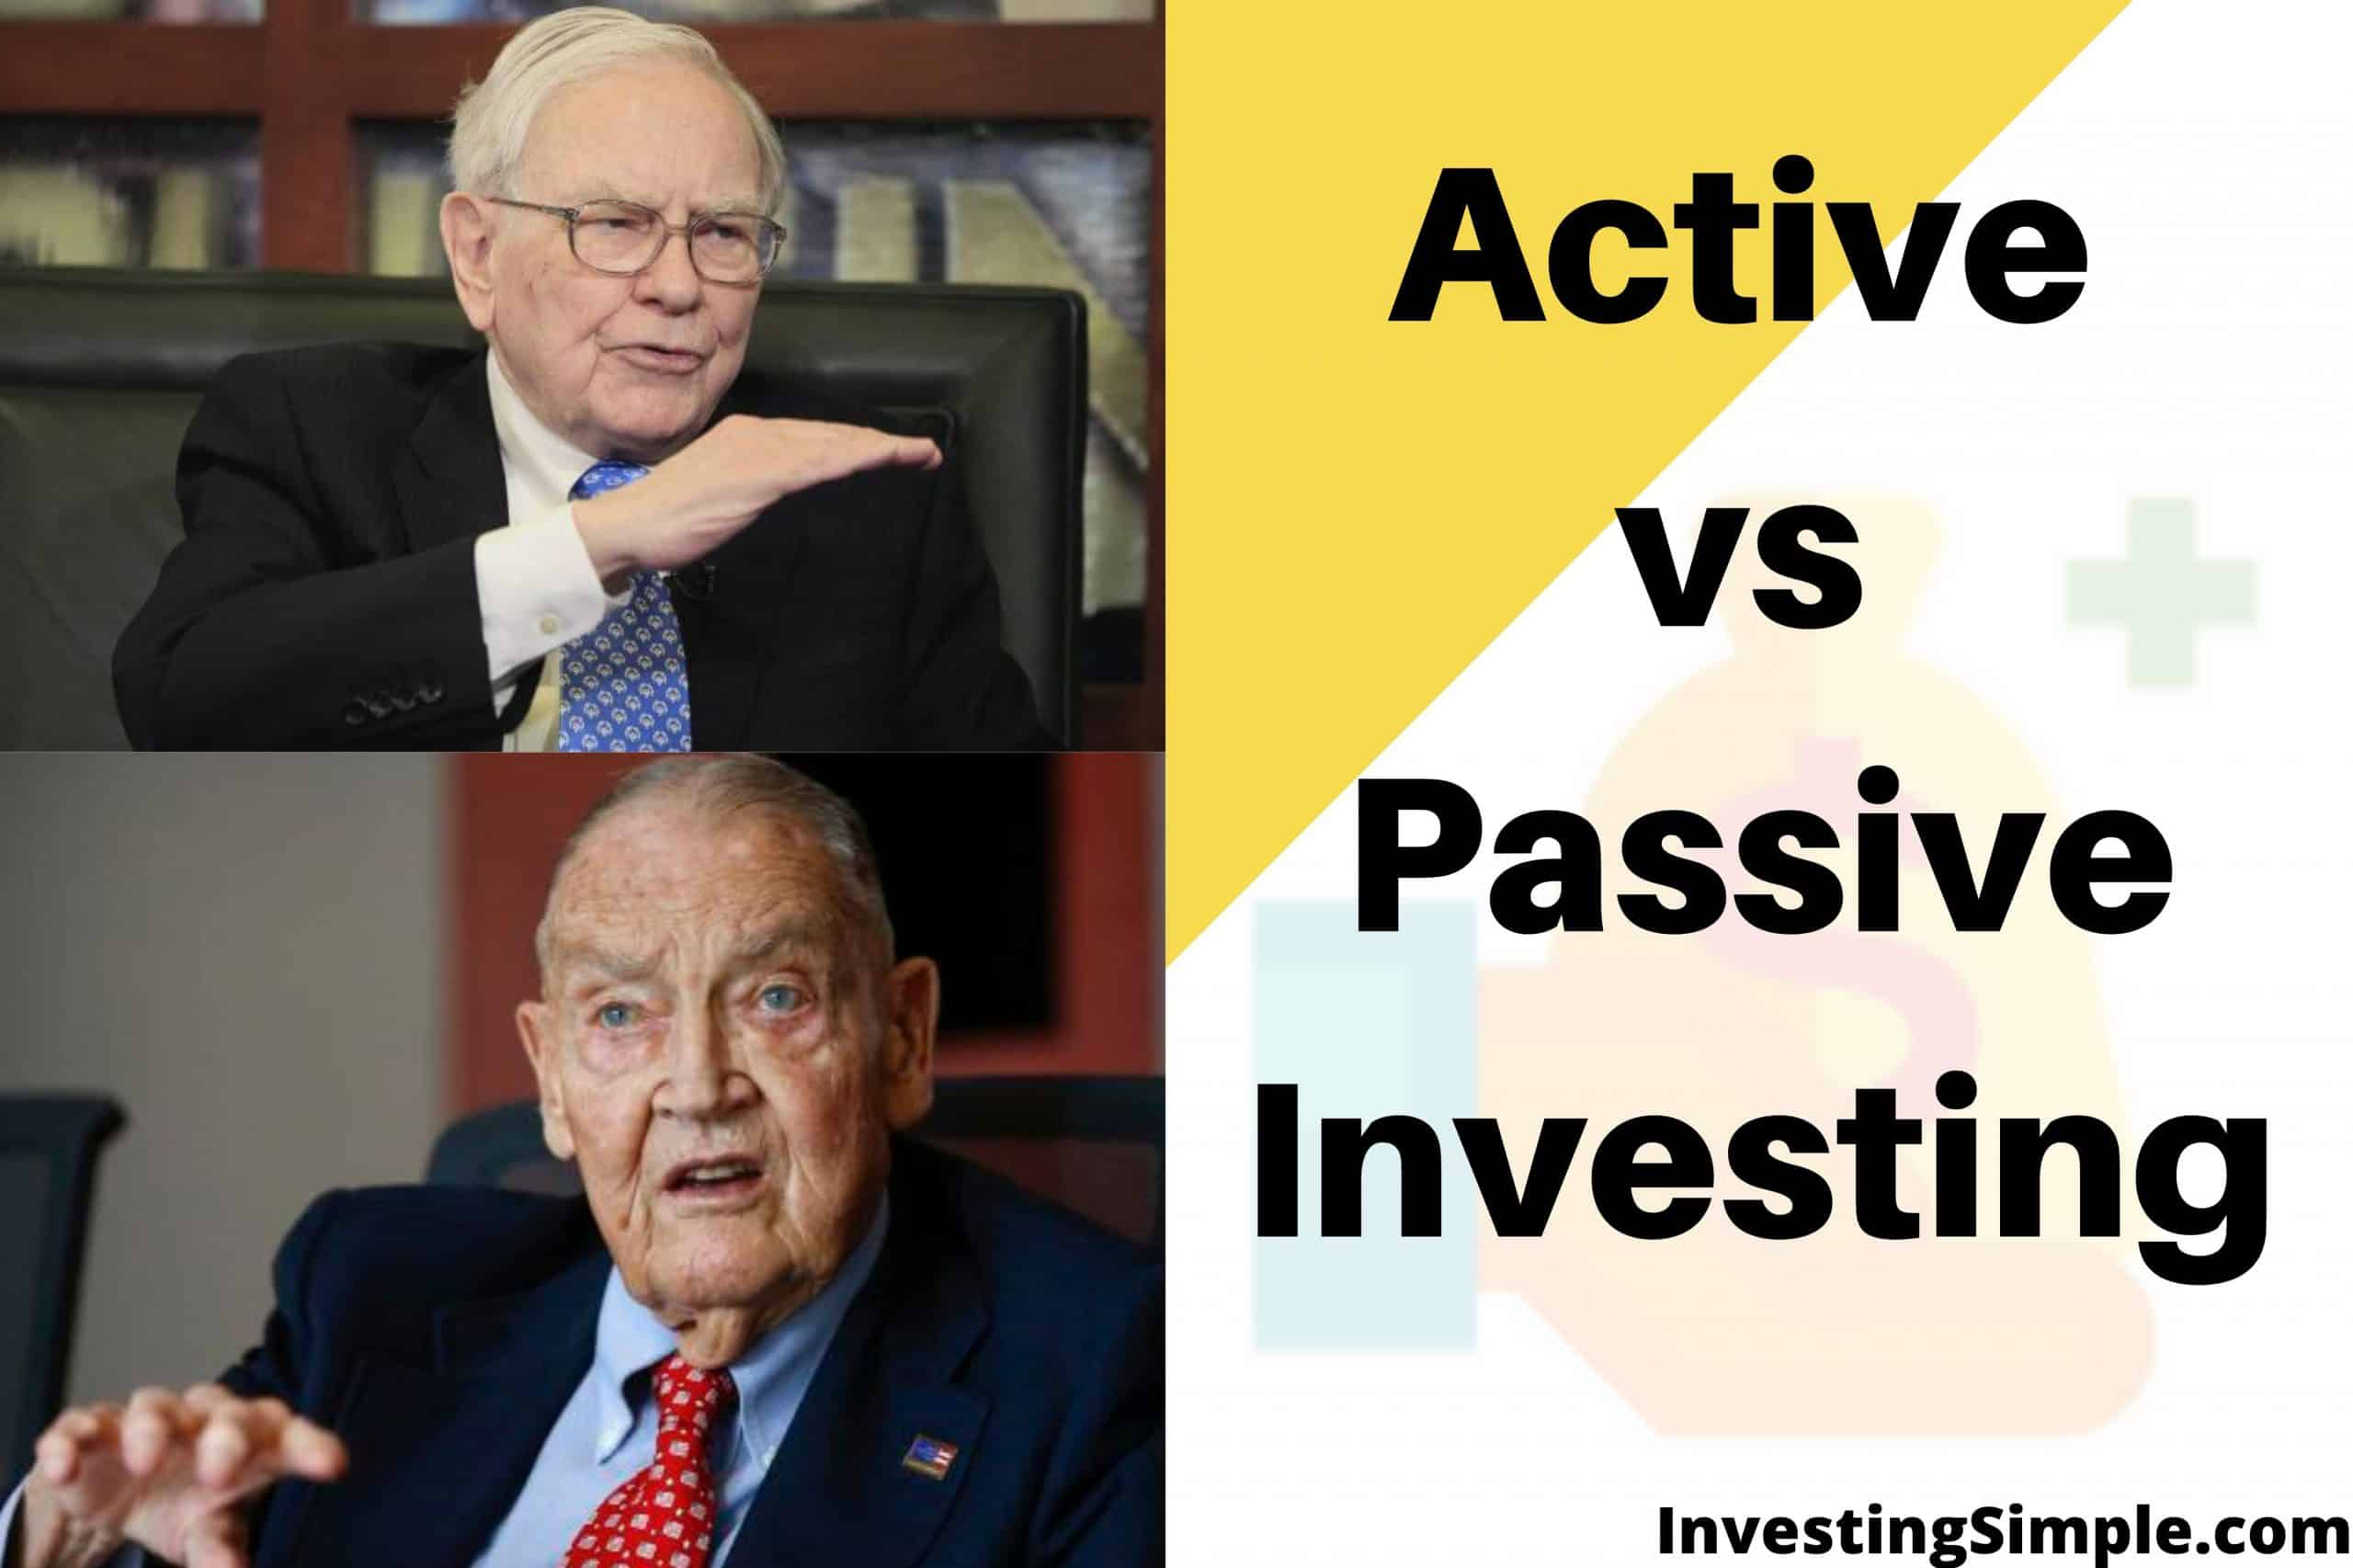 Active vs Passive Investing warren buffett and jack bogle